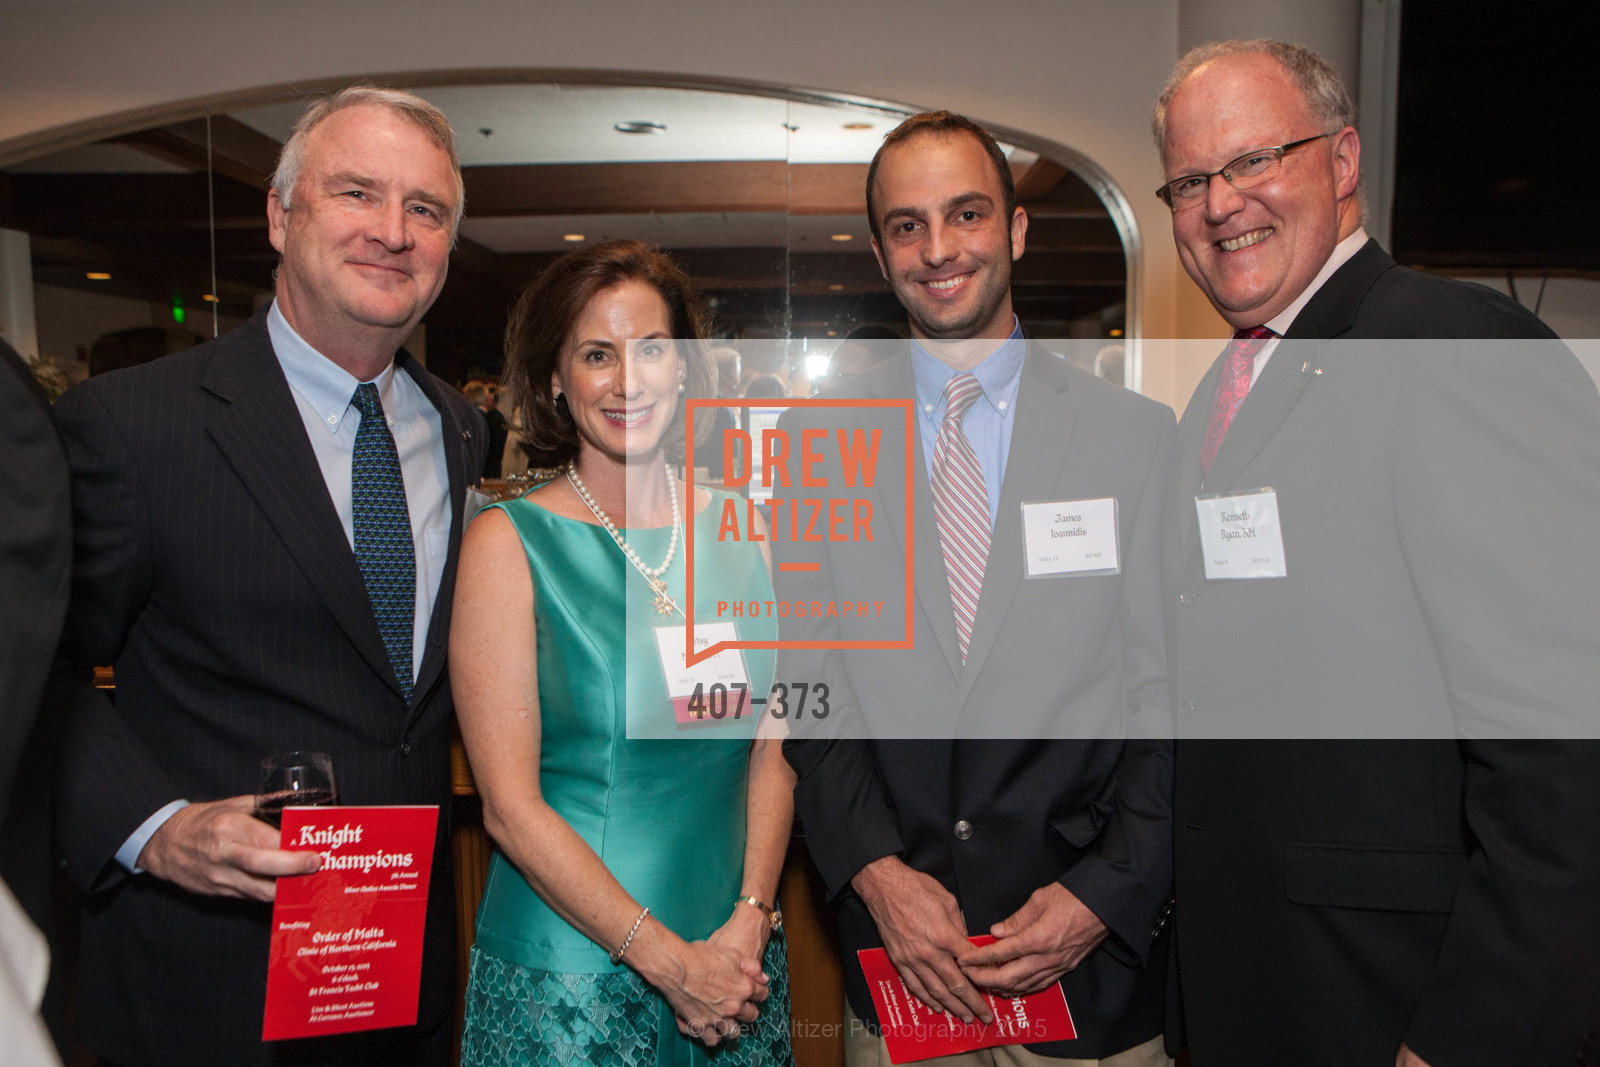 Michael Grace, Elizabeth Minno, James Ioannidis, Kenneth Ryan, Sovereign Order of Malta Presents: A Knight for Champions, 7th Annual Silver Chalice Awards Dinner, St. Francis Yacht Club. 99 Yacht Rd, October 13th, 2015,Drew Altizer, Drew Altizer Photography, full-service agency, private events, San Francisco photographer, photographer california